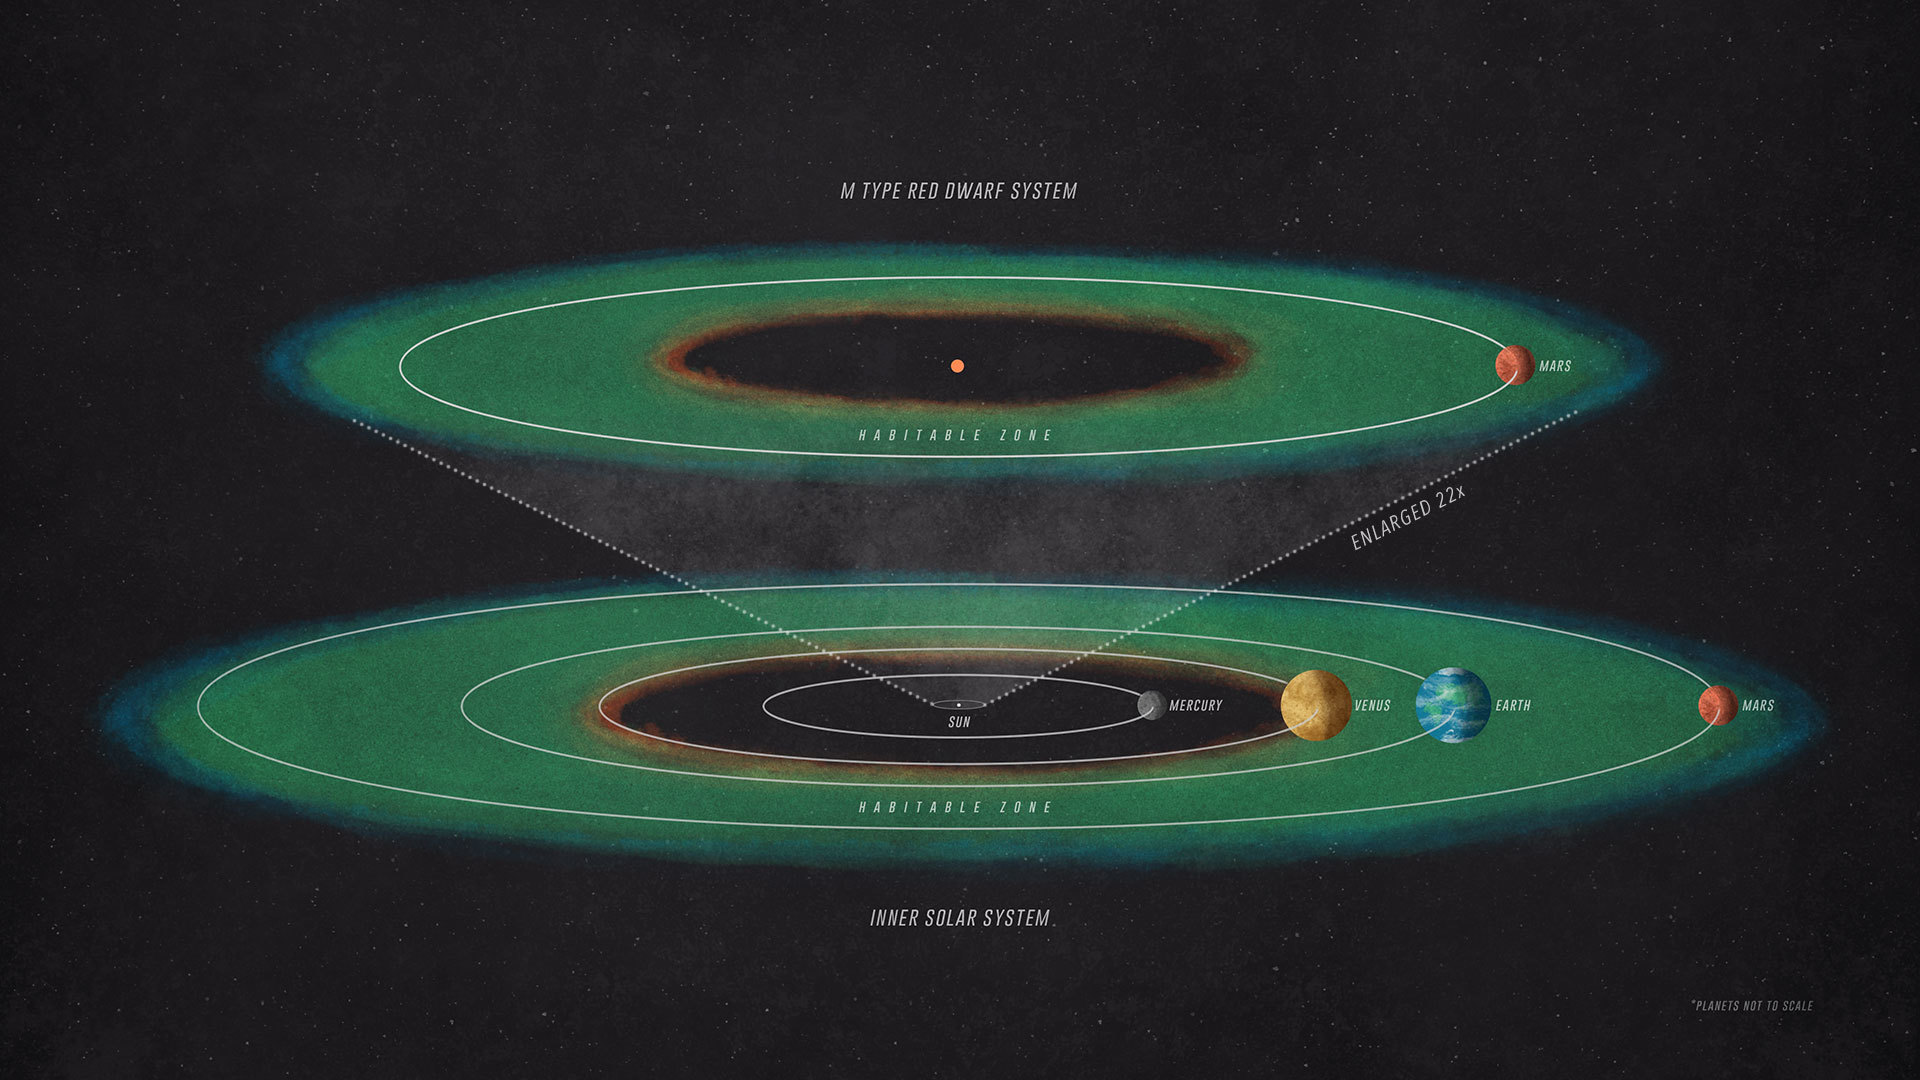 This depicts that in order to receive the same amount of starlight as Mars receives from our Sun, a planet orbiting an M-type red dwarf would have to be positioned much closer to its star than Mercury is to the Sun.